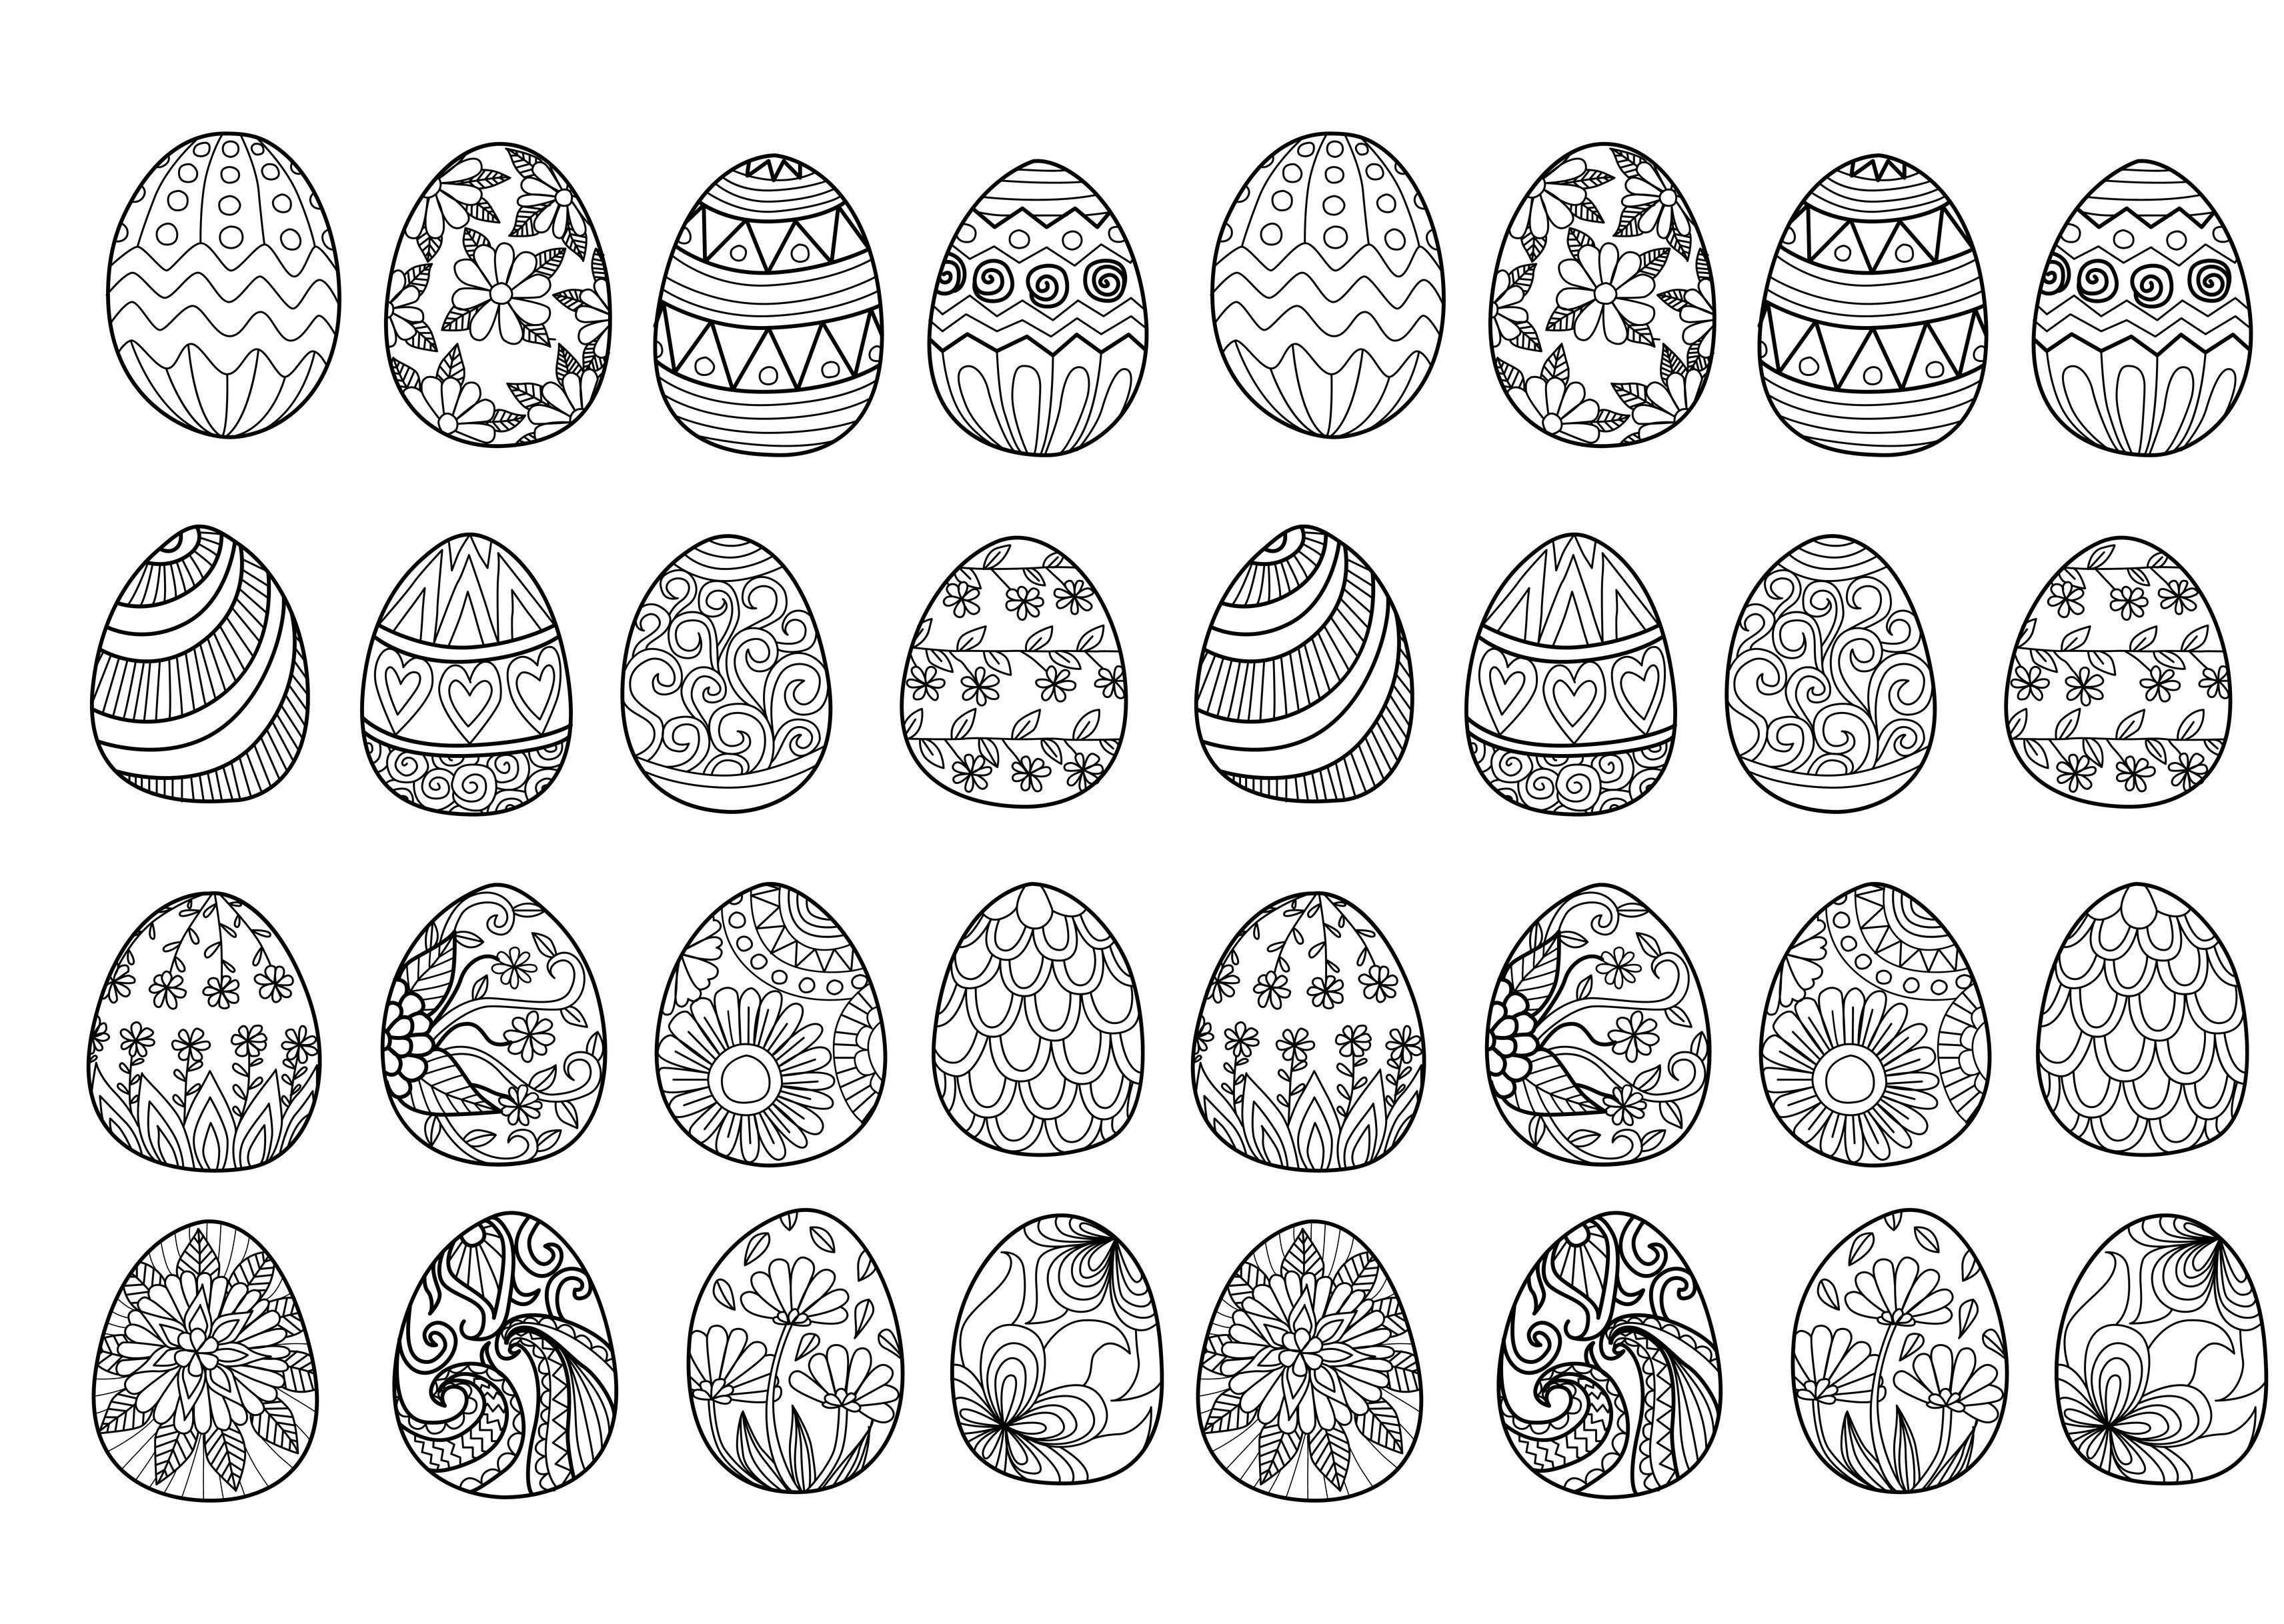 Easter Eggs Complex 32 Easter Eggs To Print And Color Various Styles Patterns From The Gal Easter Egg Coloring Pages Coloring Eggs Coloring Easter Eggs